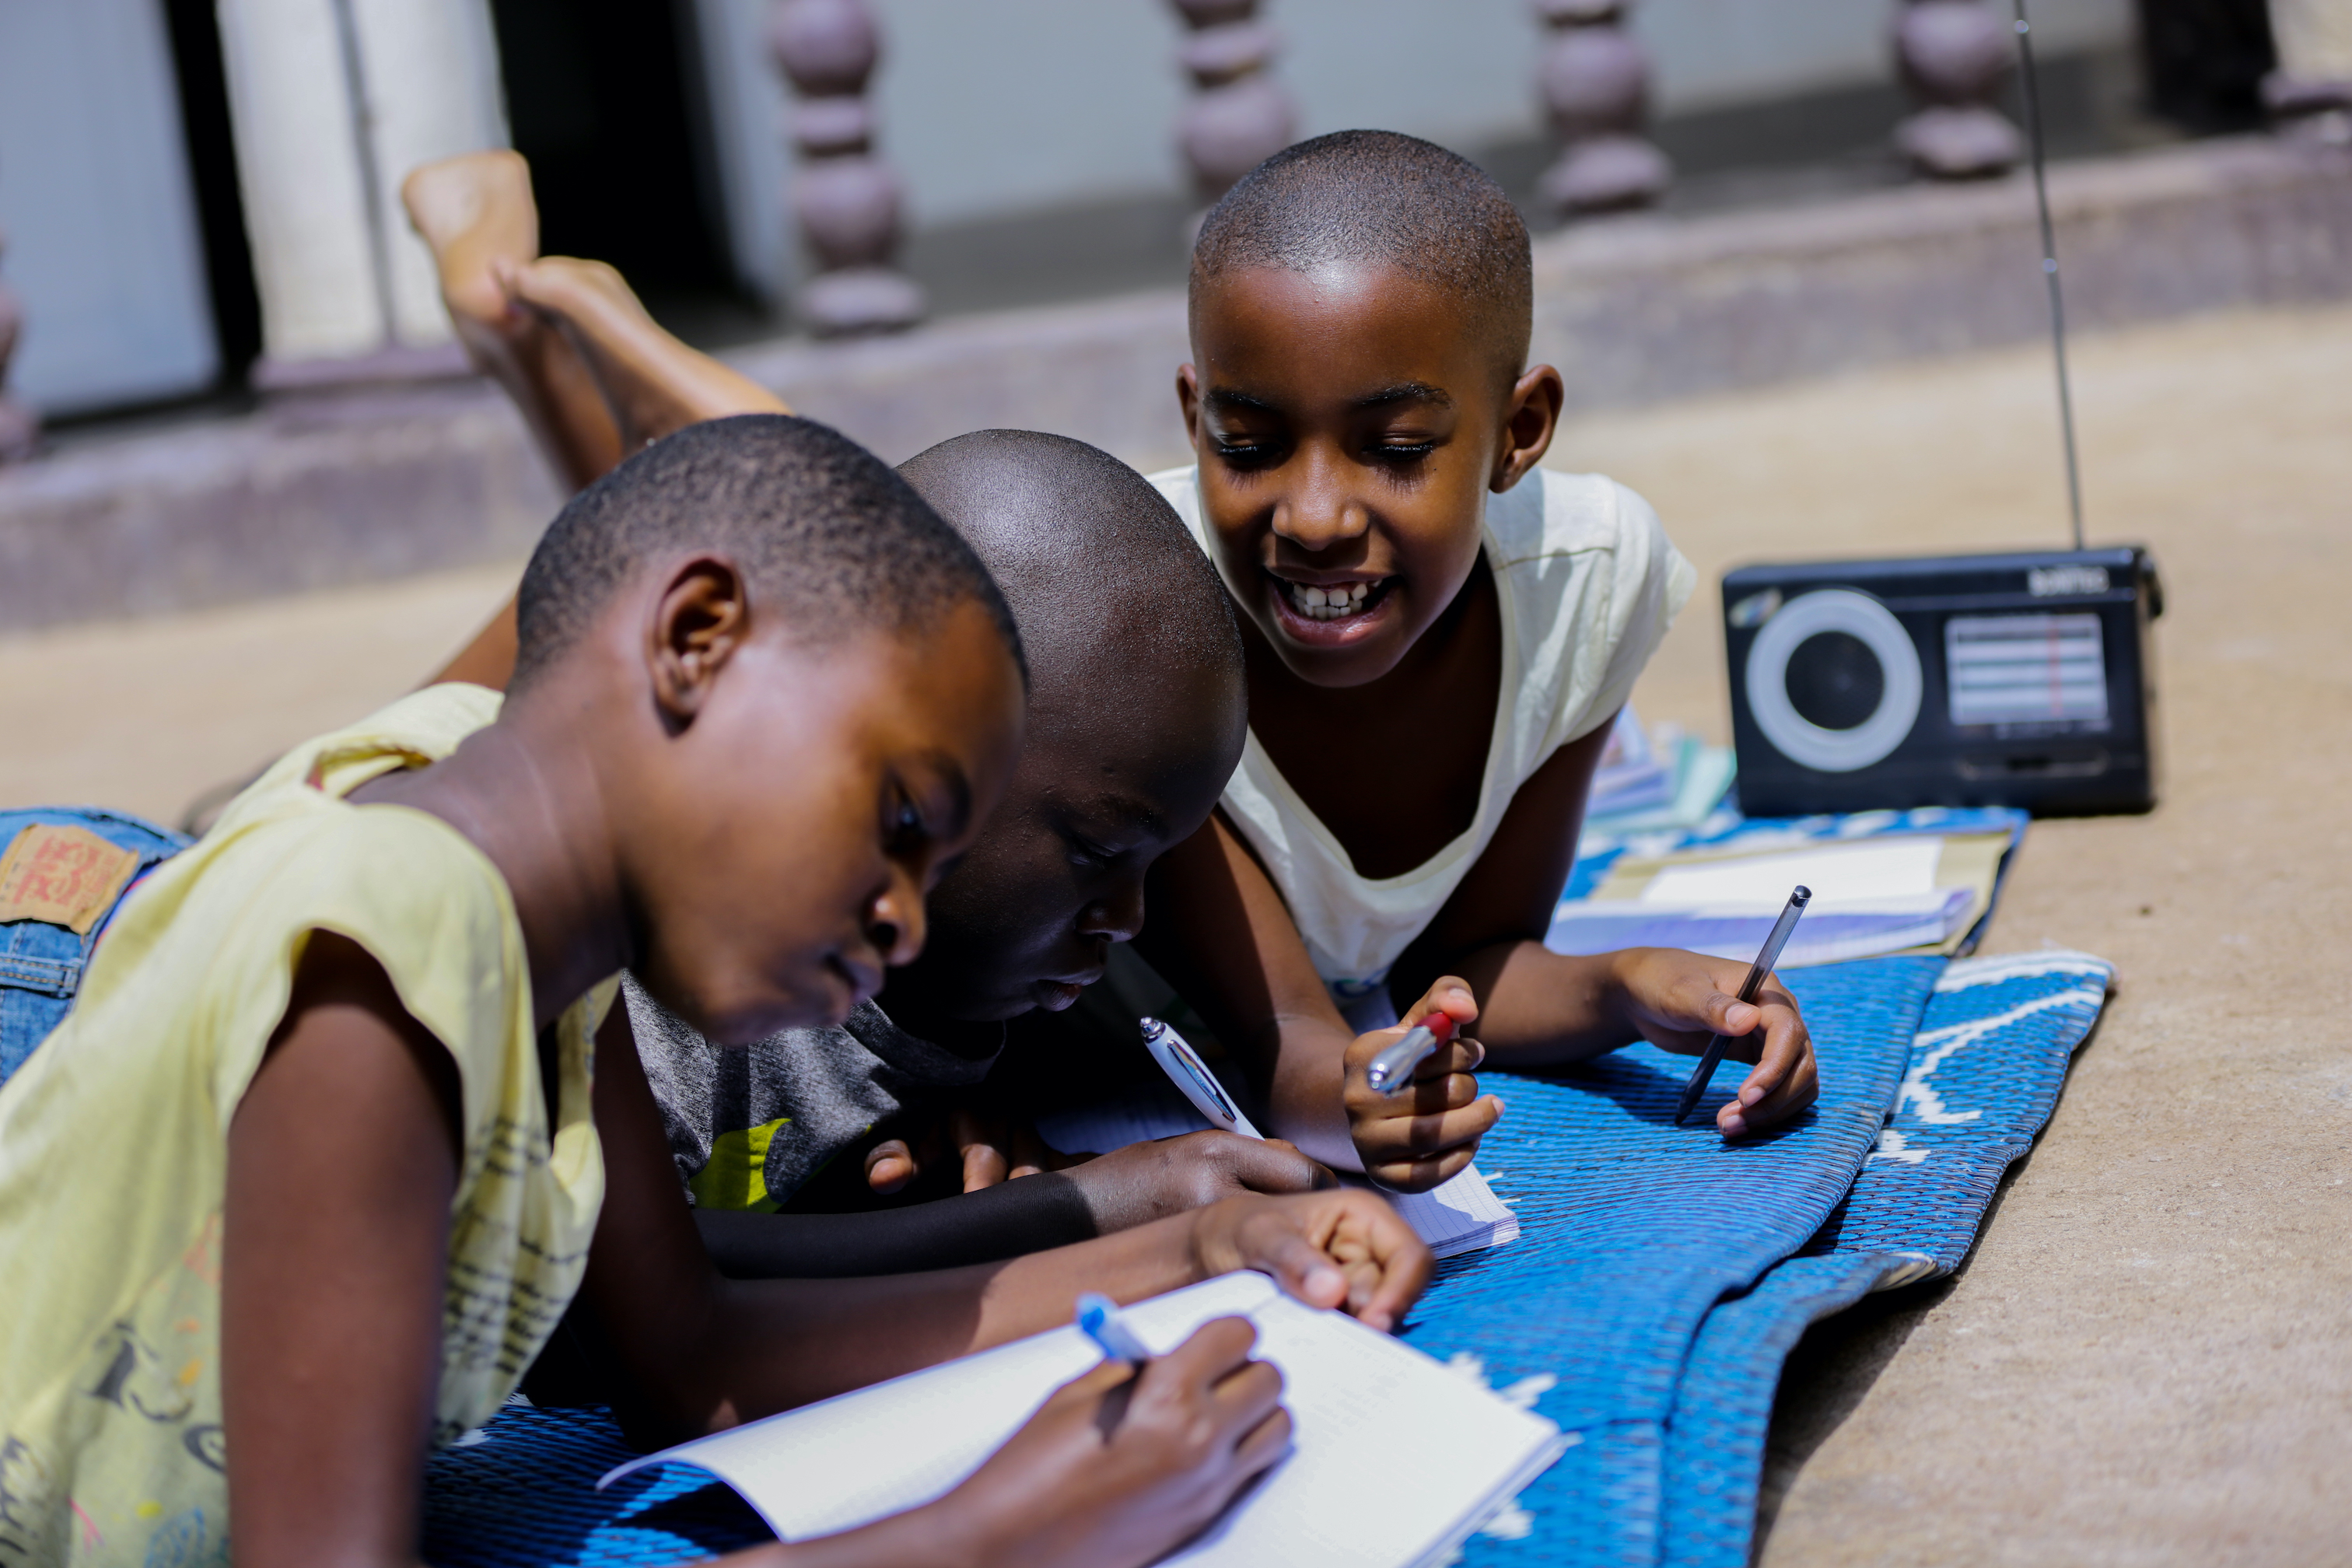 Rwanda's students listen to radio lessons at home while their schools are closed due to COVID-19